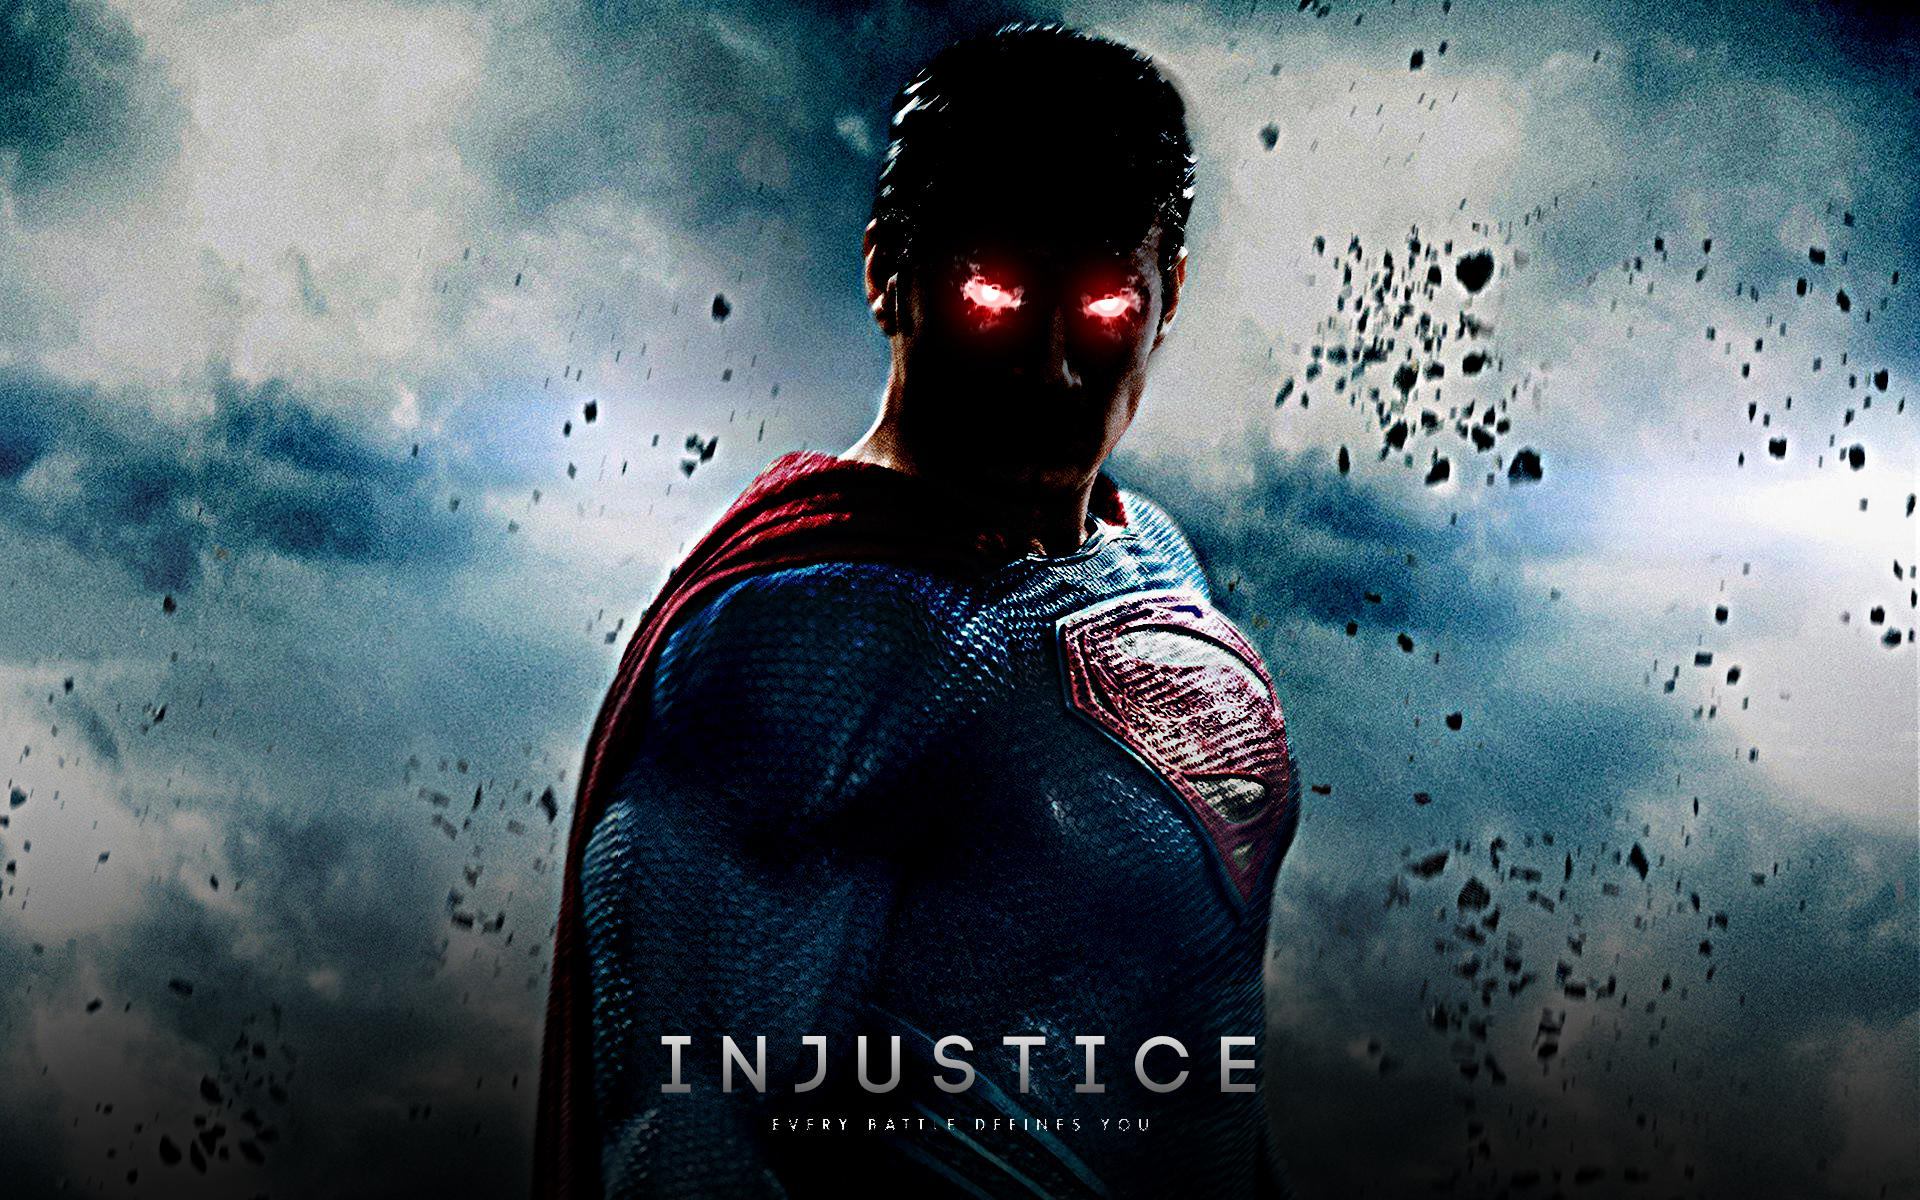 Download The Image Of The Evil Superman With Black Suit: Justice League Trailer Leak Suggests Dark And Dangerous